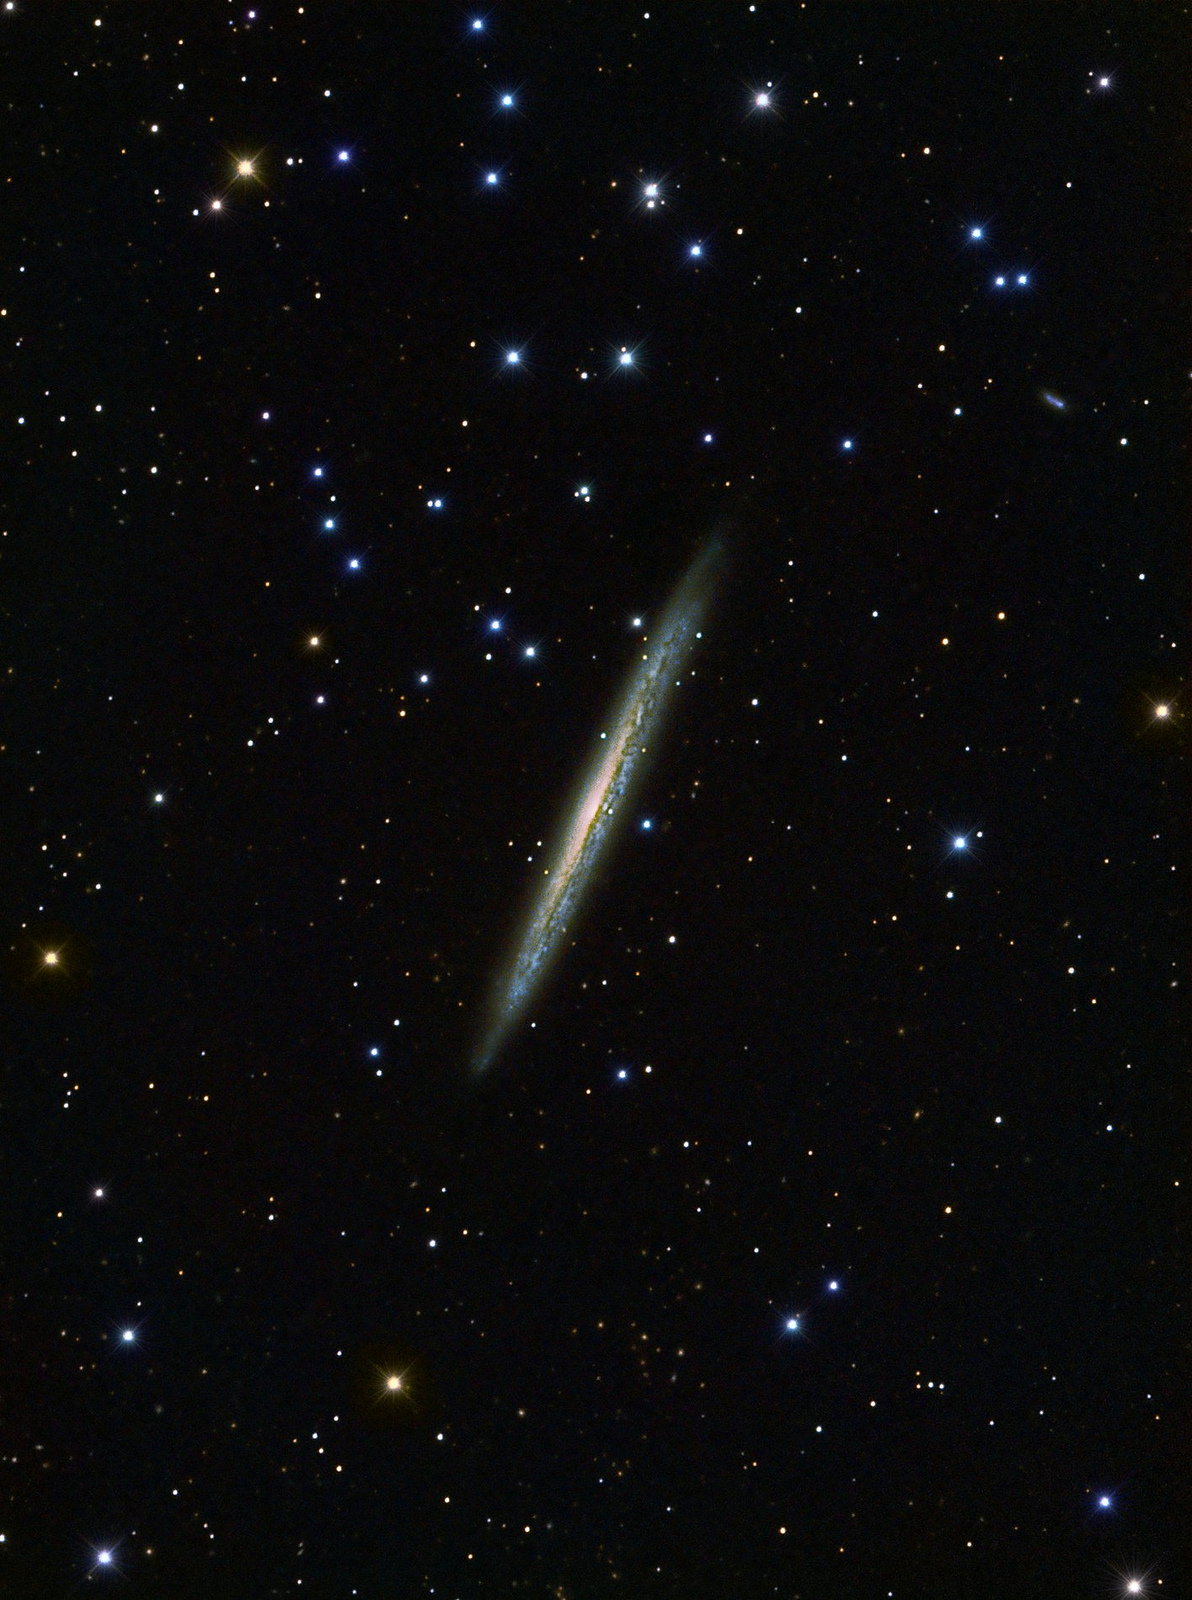 Ouch! Galaxy Cuts Like a Knife in Stunning Image